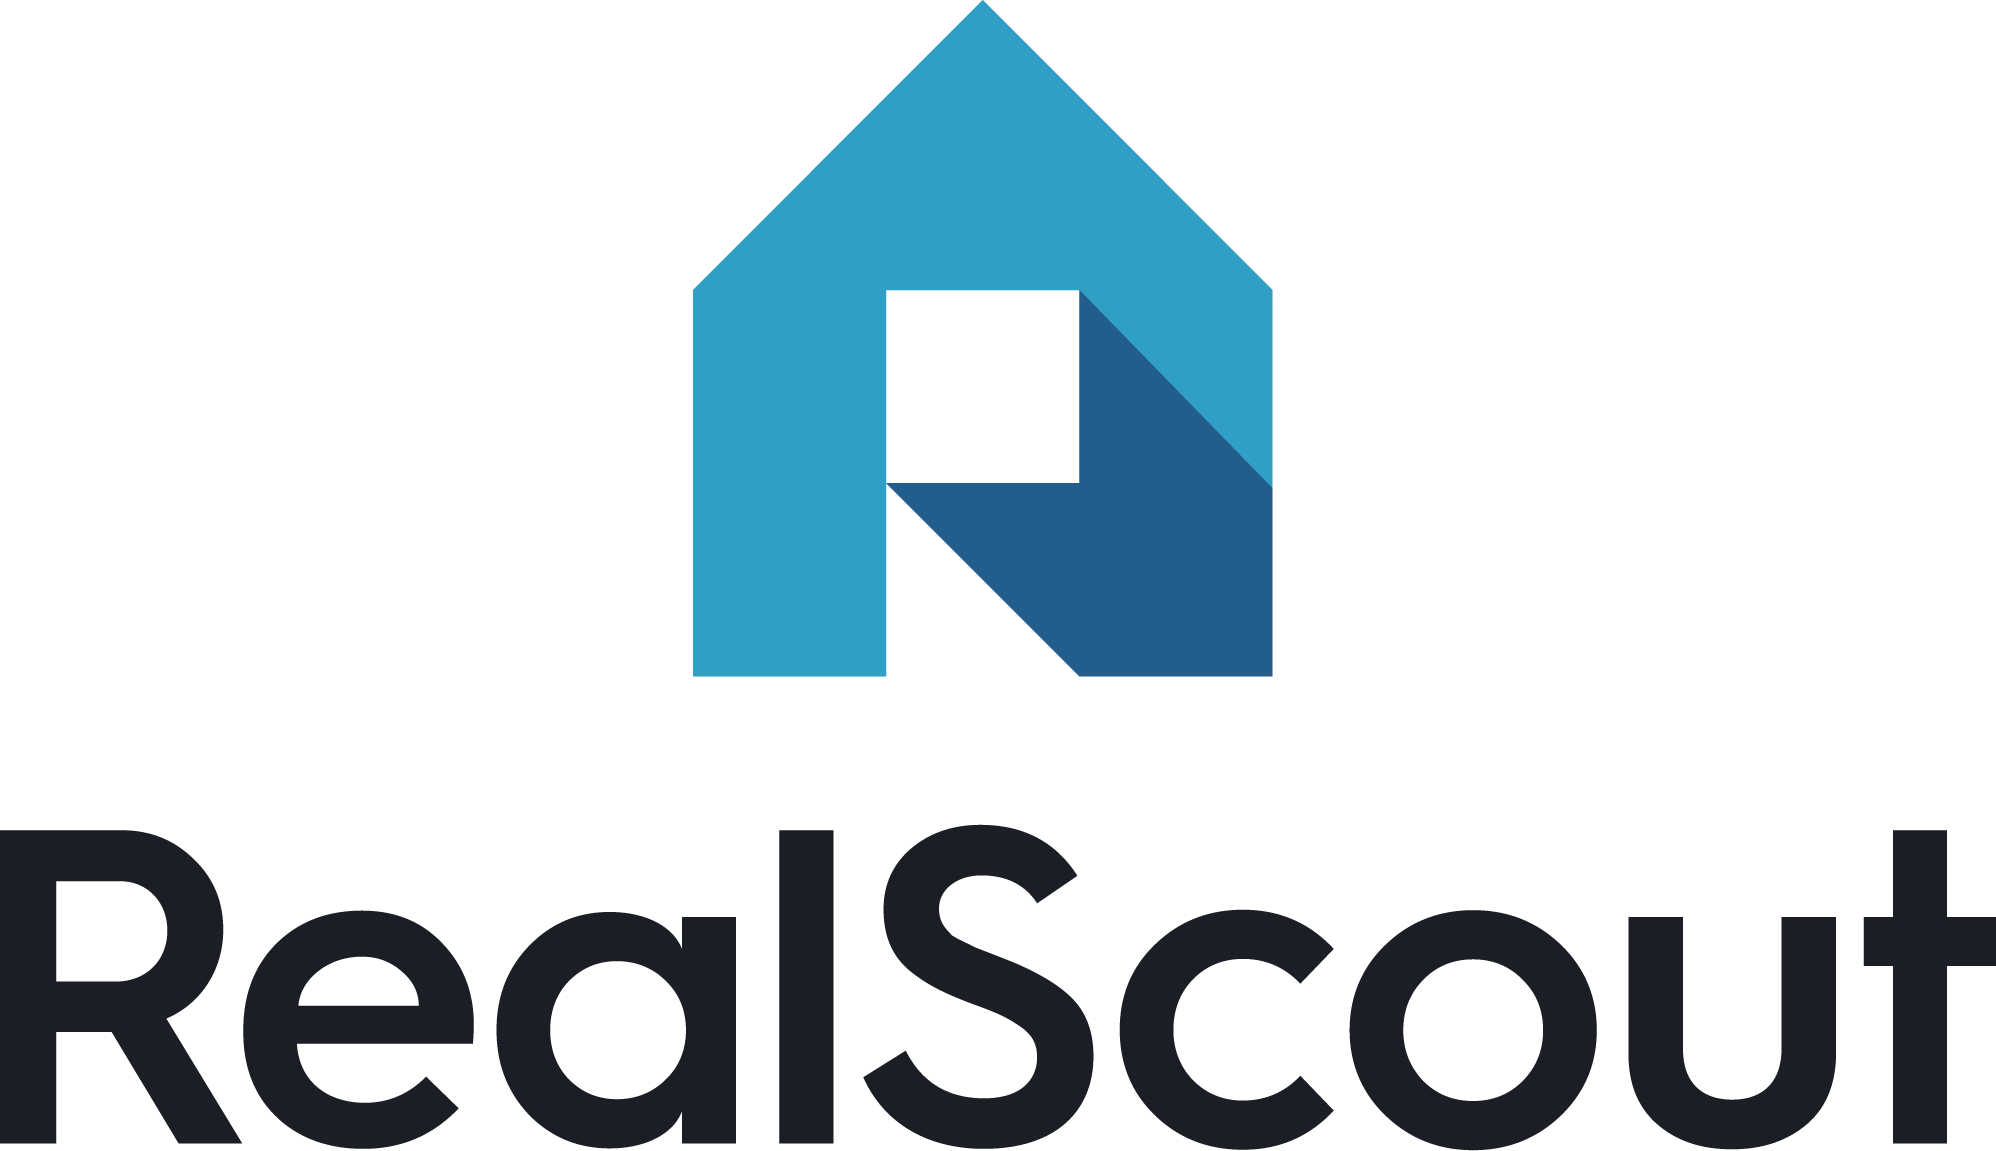 blue-square-realscout-logo-full-colour-rgb.png